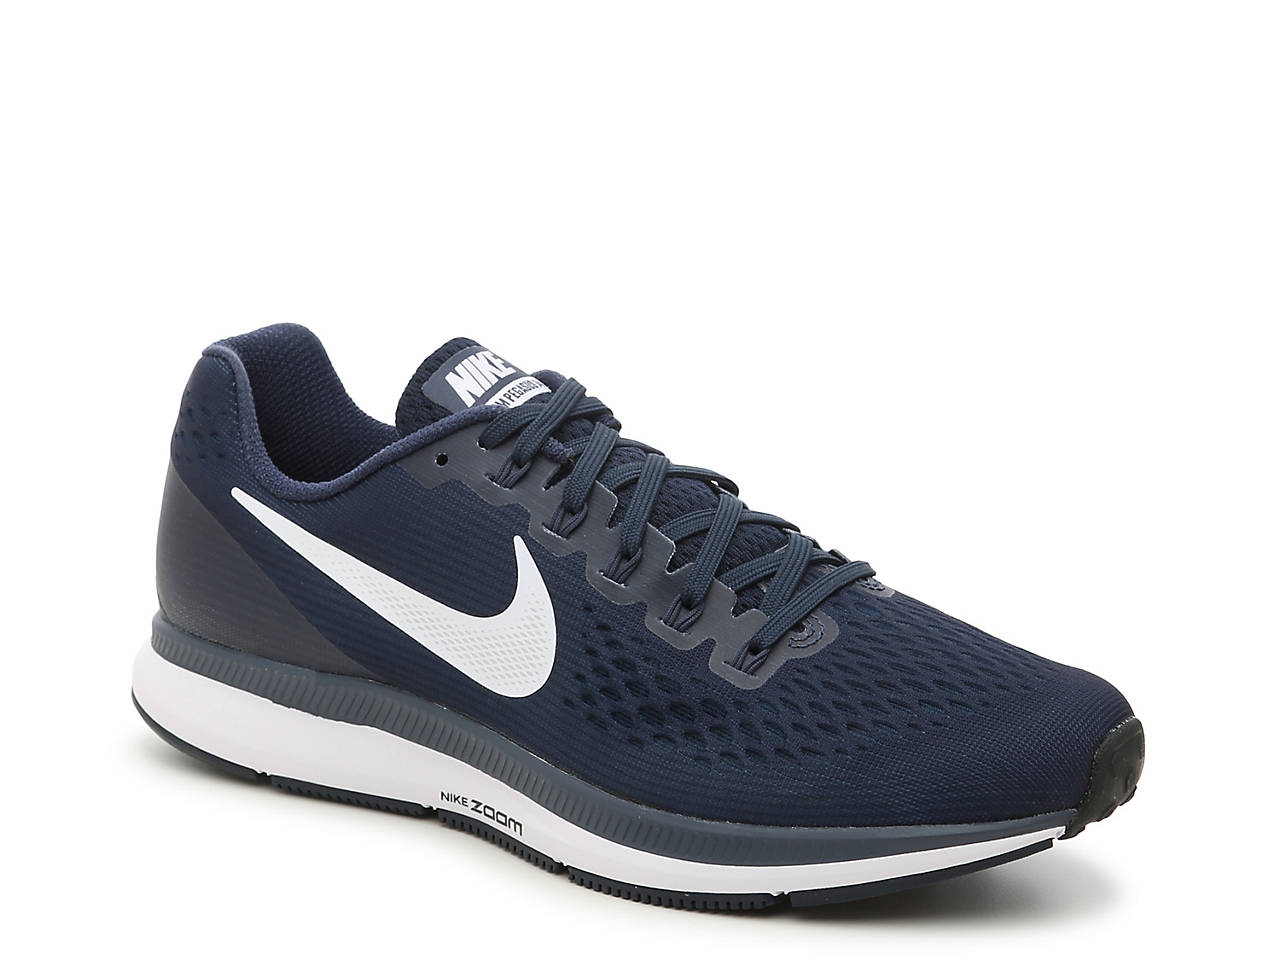 cfe754b9a89 Nike Air Zoom Pegasus 34 Running Shoe - Men s Men s Shoes